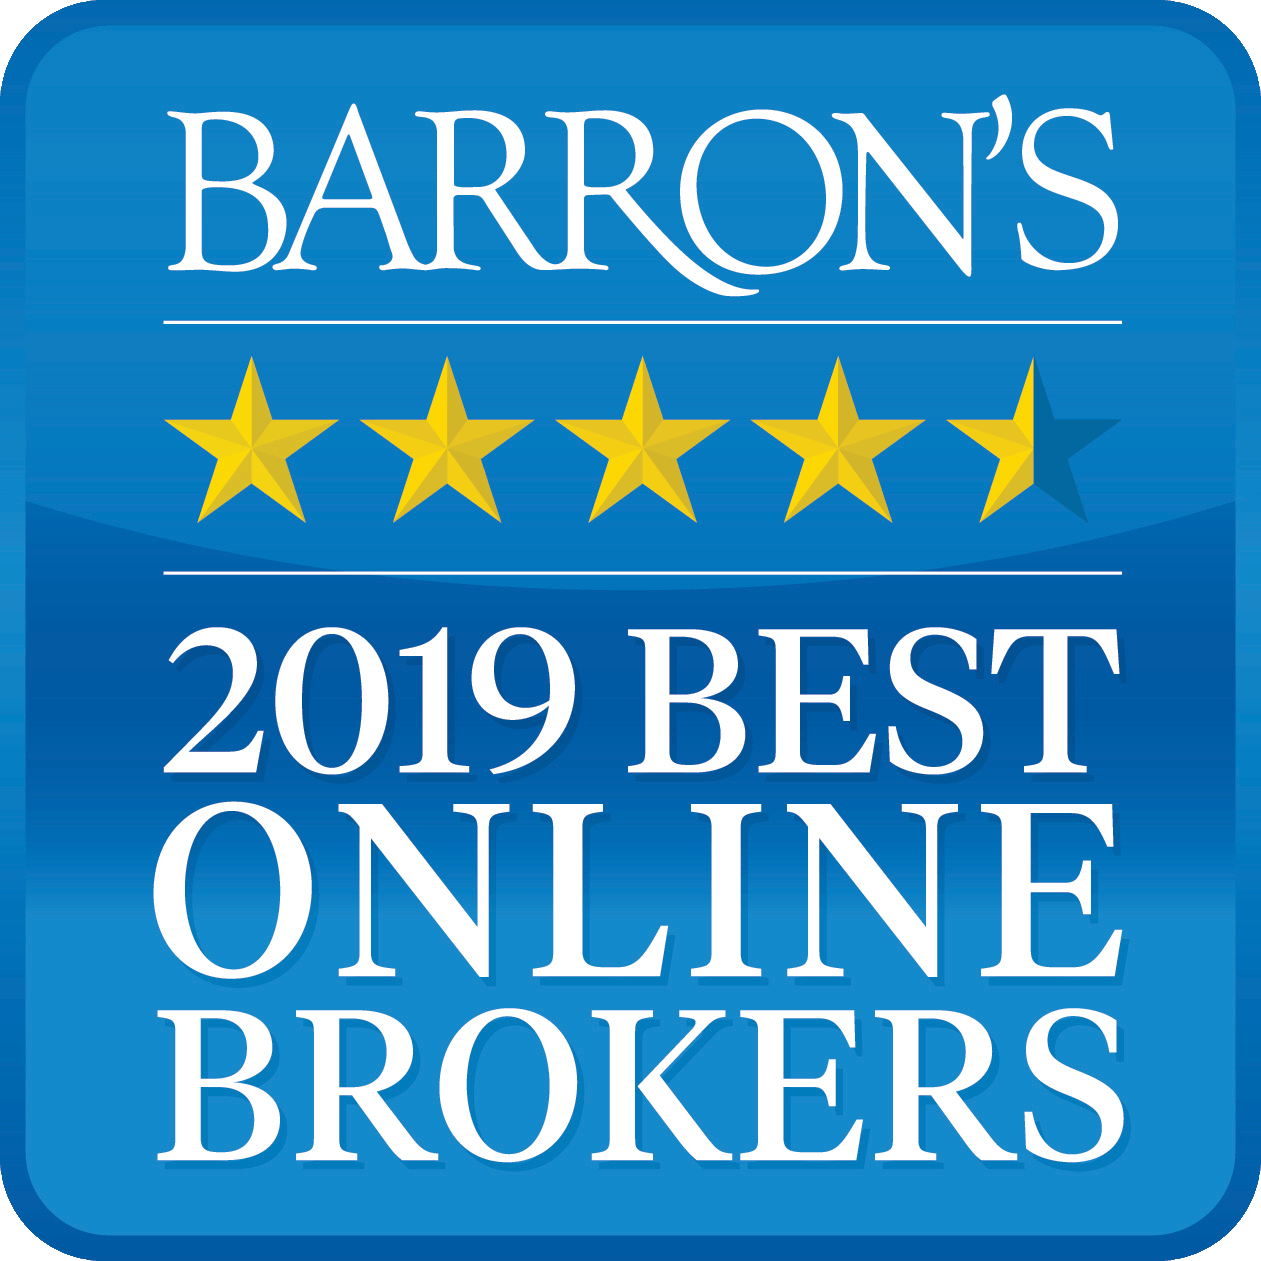 Interactive Brokers was Rated #1 - Best Online Broker - 2019 by Barron's